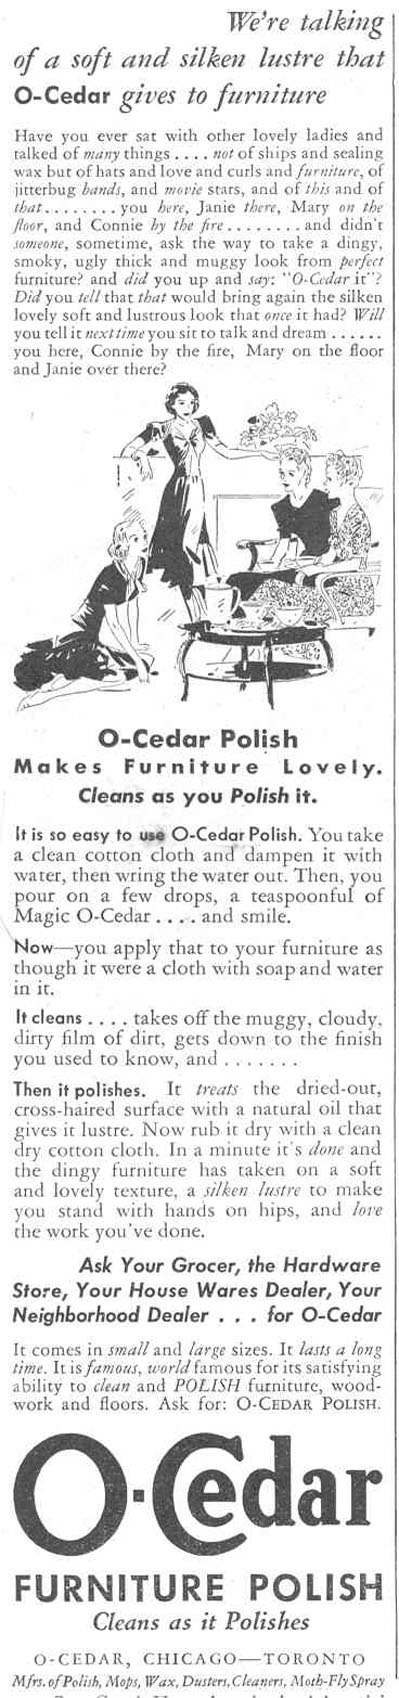 O-CEDAR FURNITURE POLISH GOOD HOUSEKEEPING 03/01/1940 p. 174